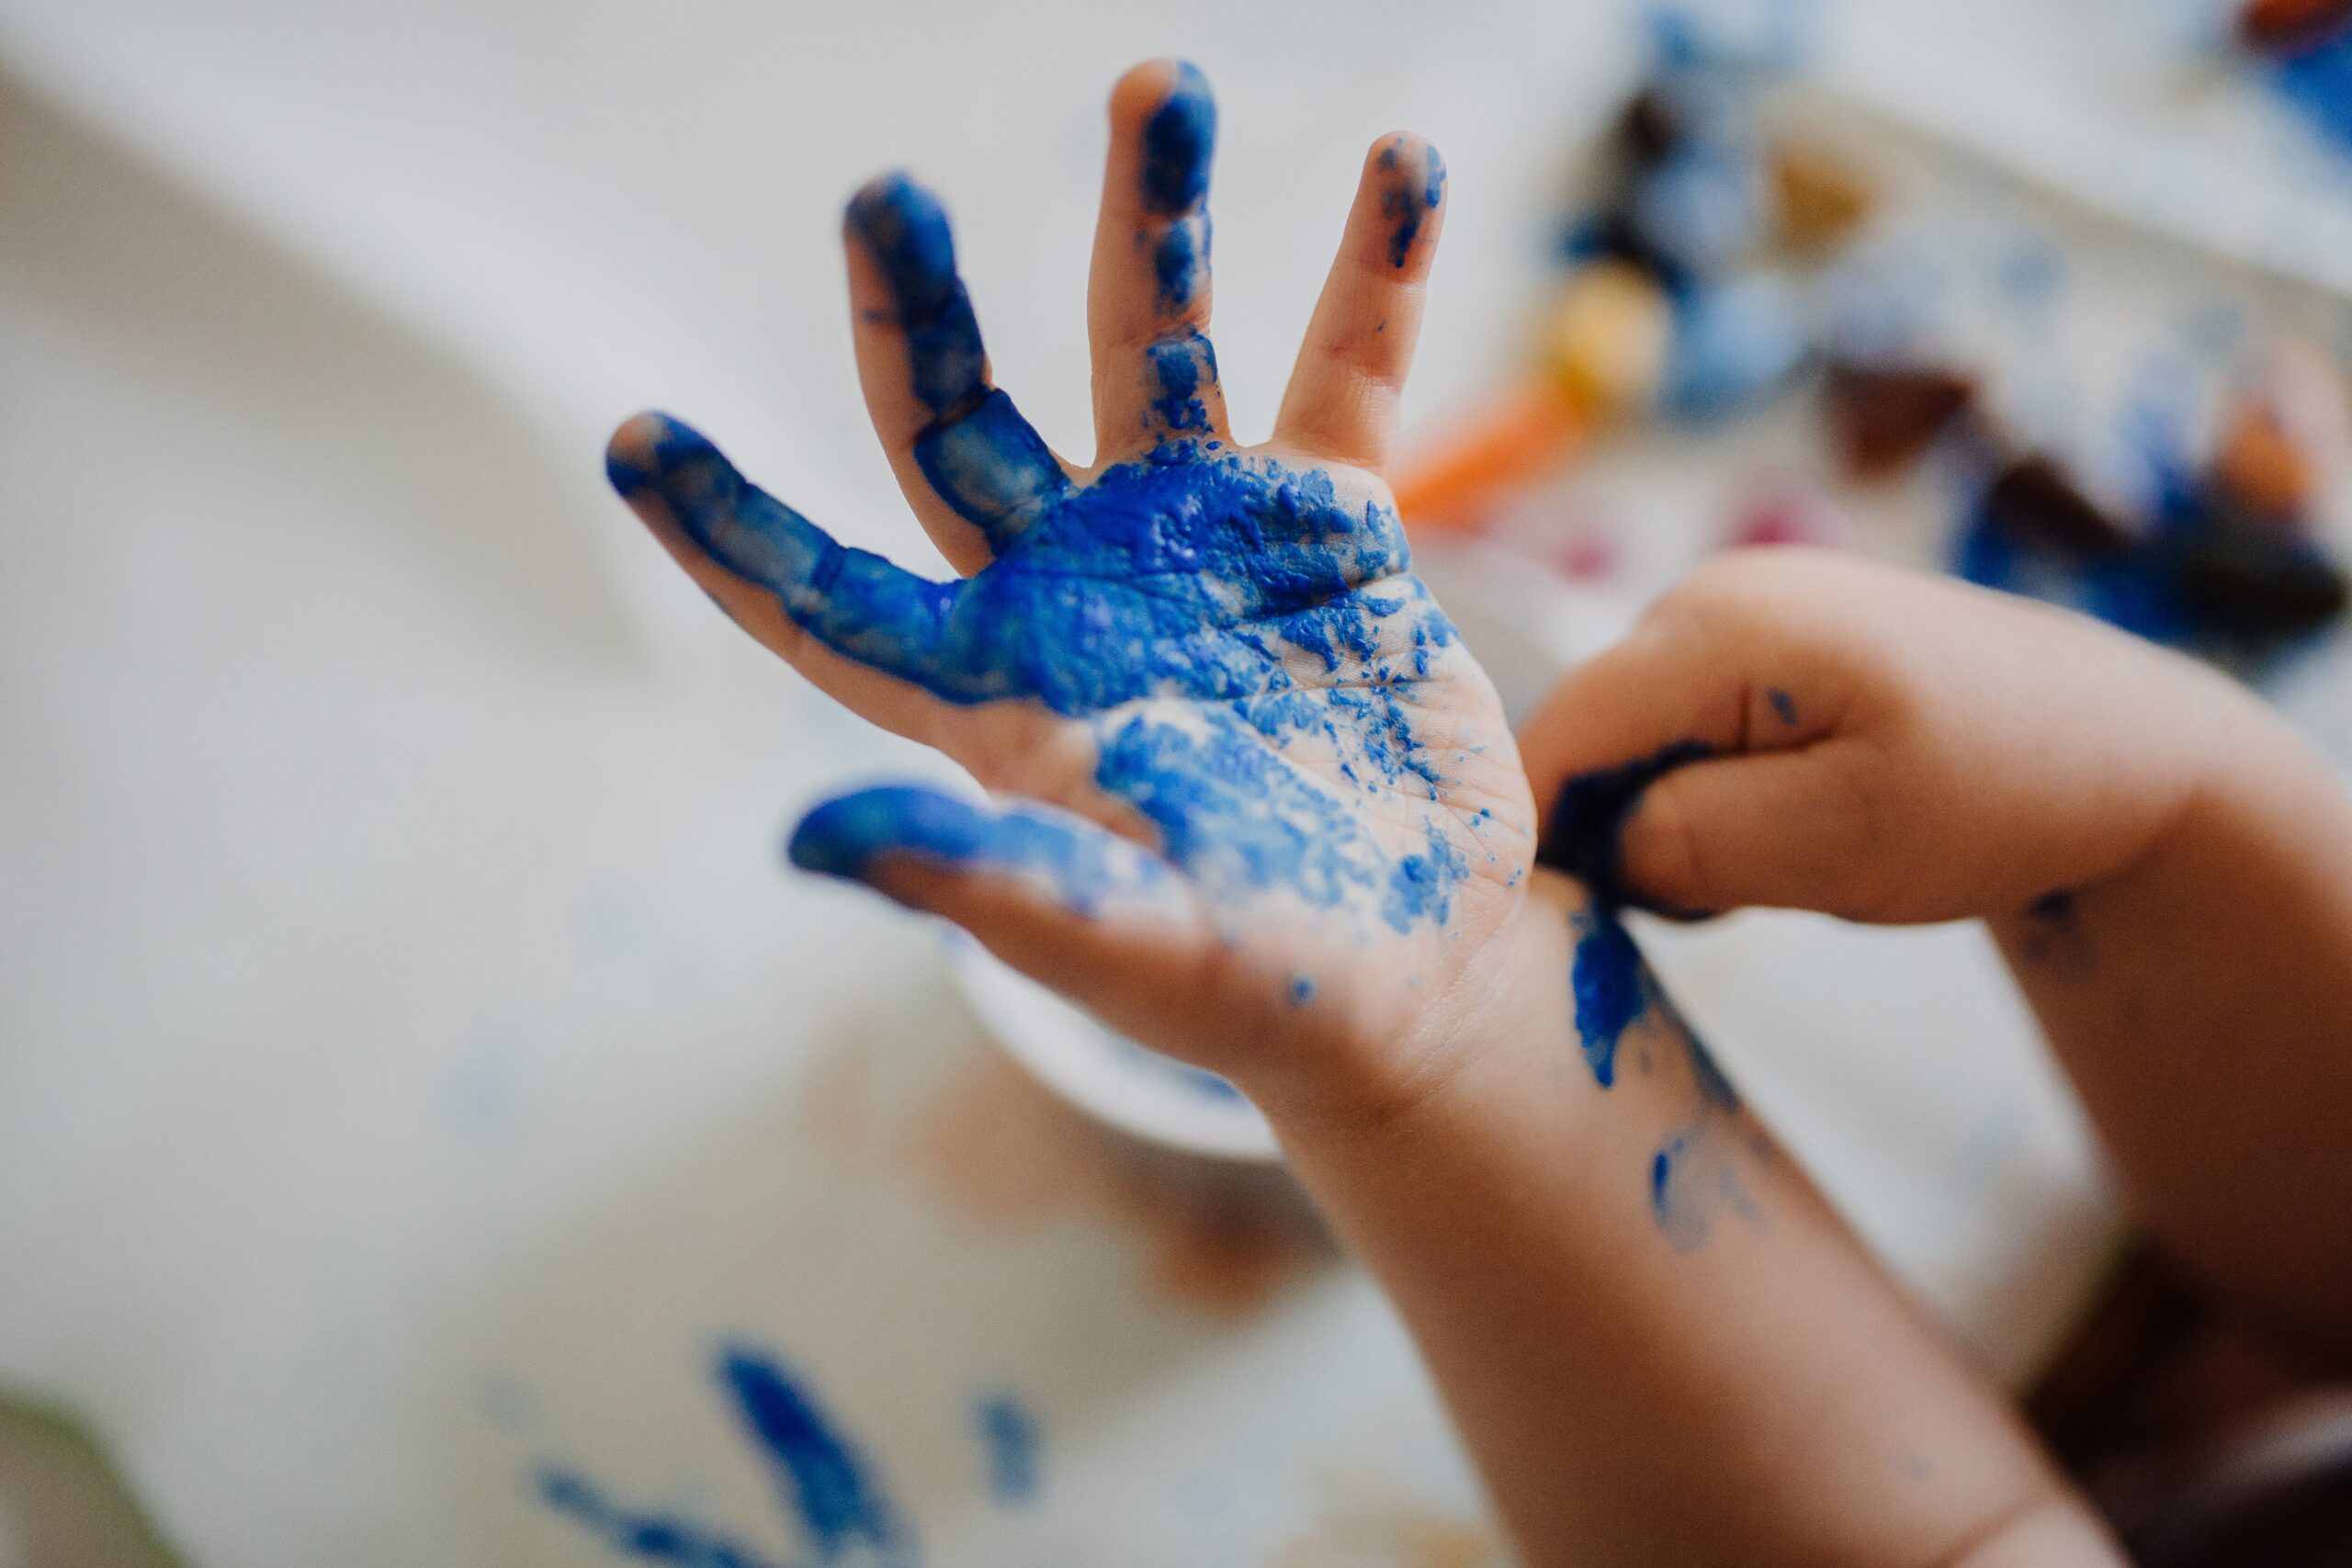 A child's hand covered in paint